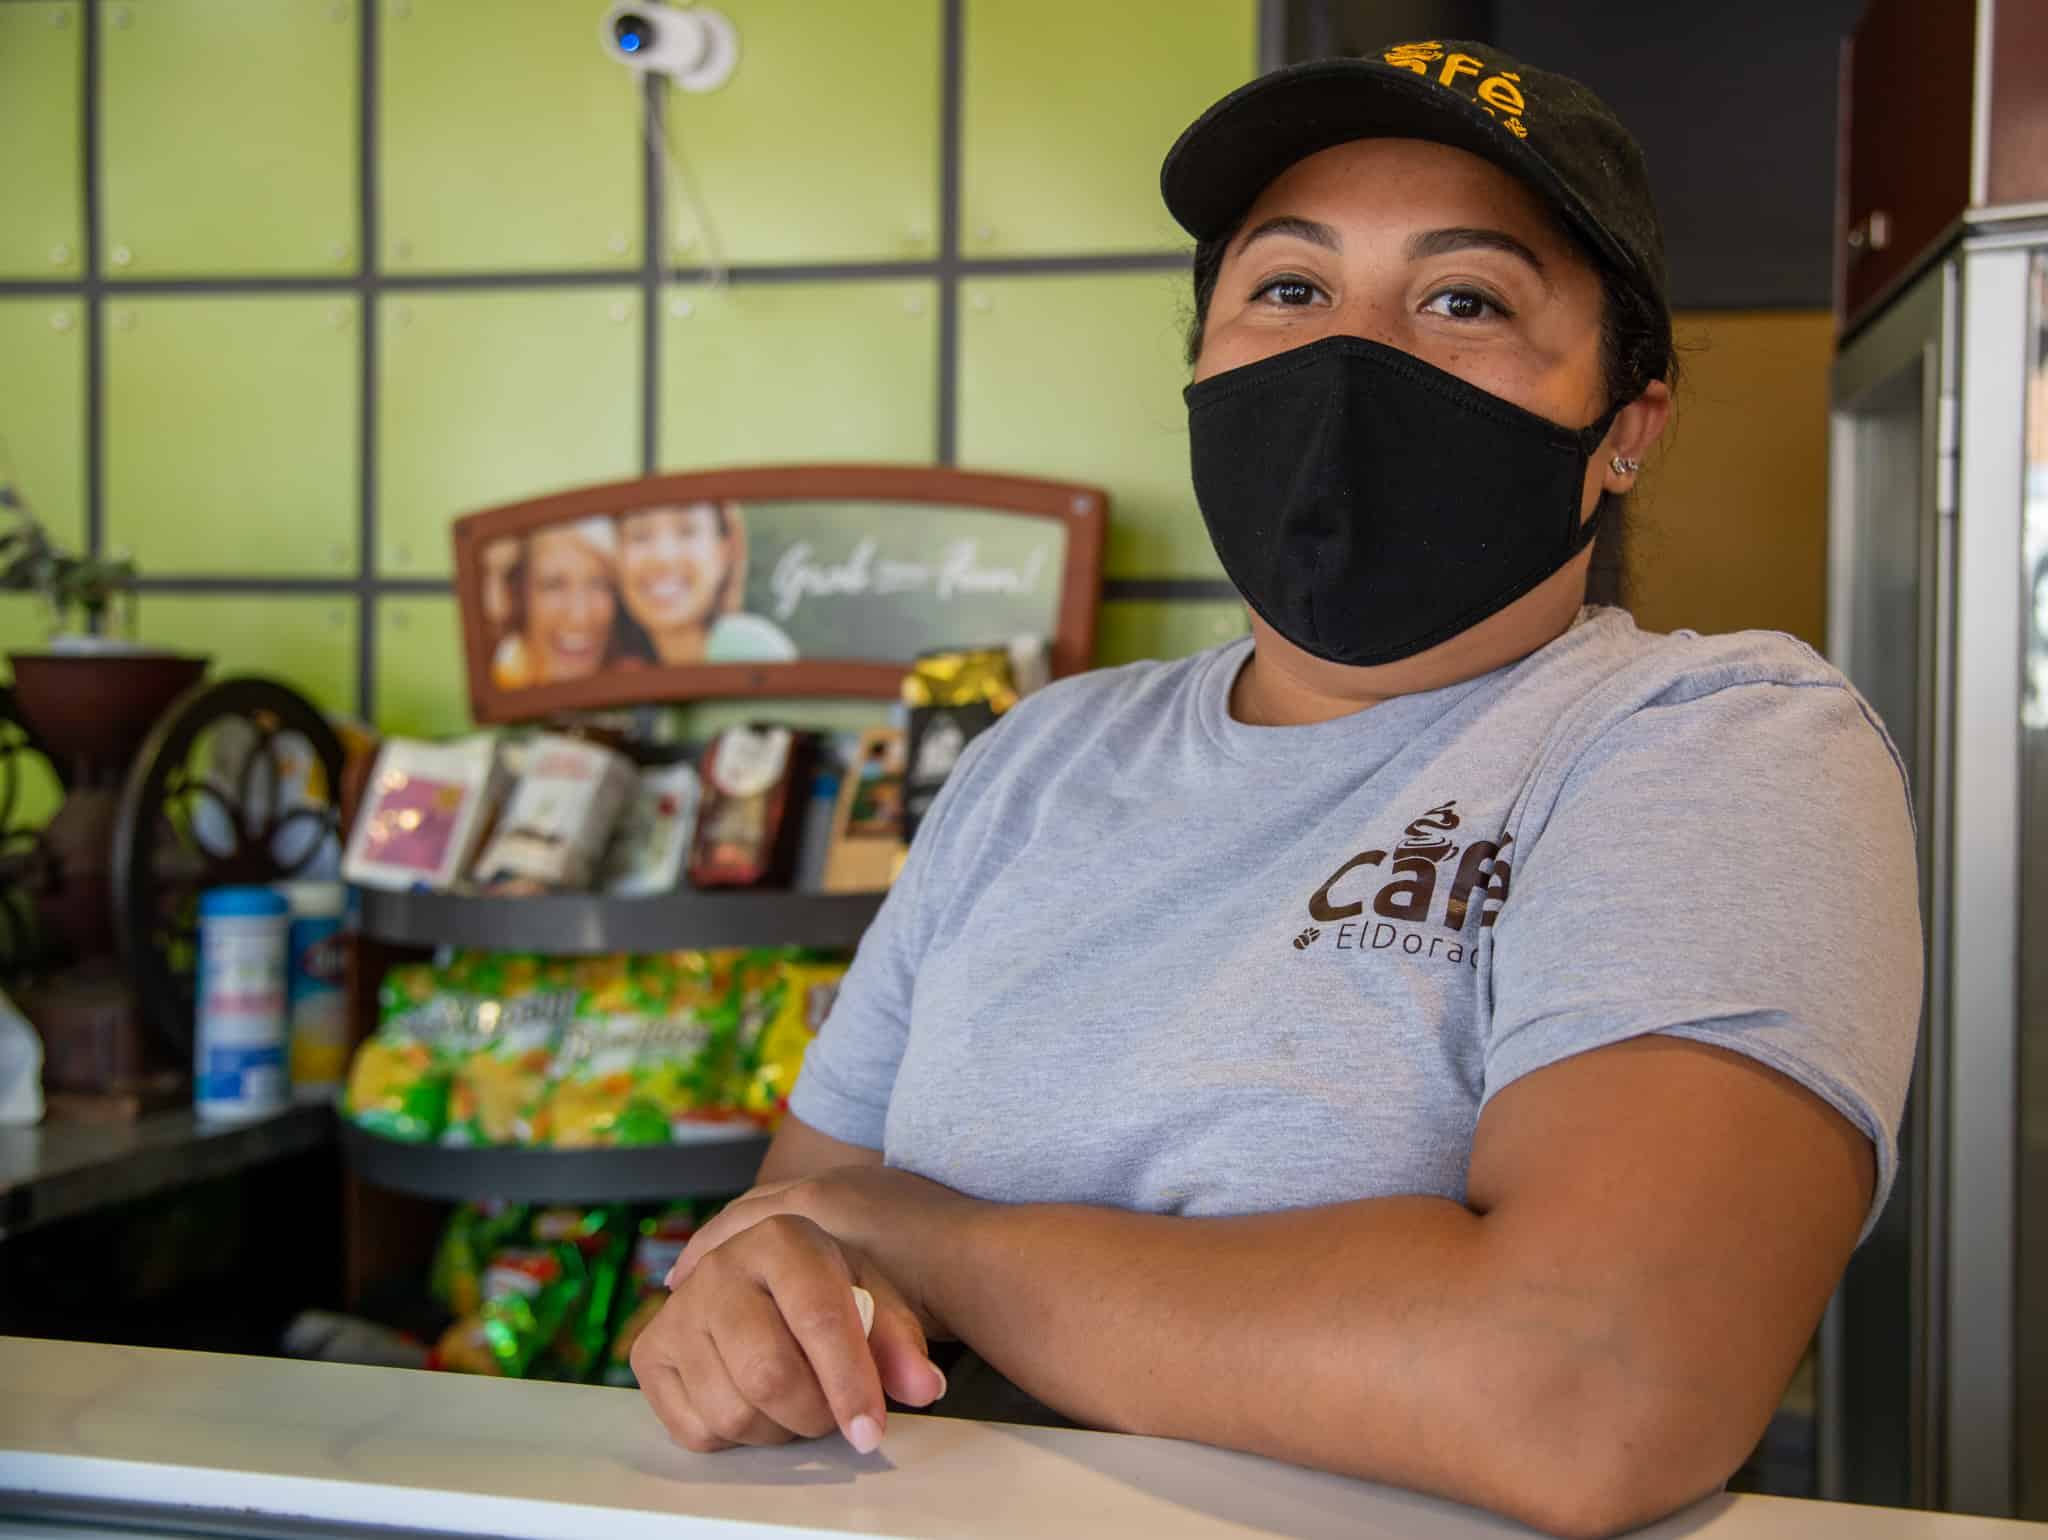 Restrictions to pandemic aid put Latinos businesses at risk